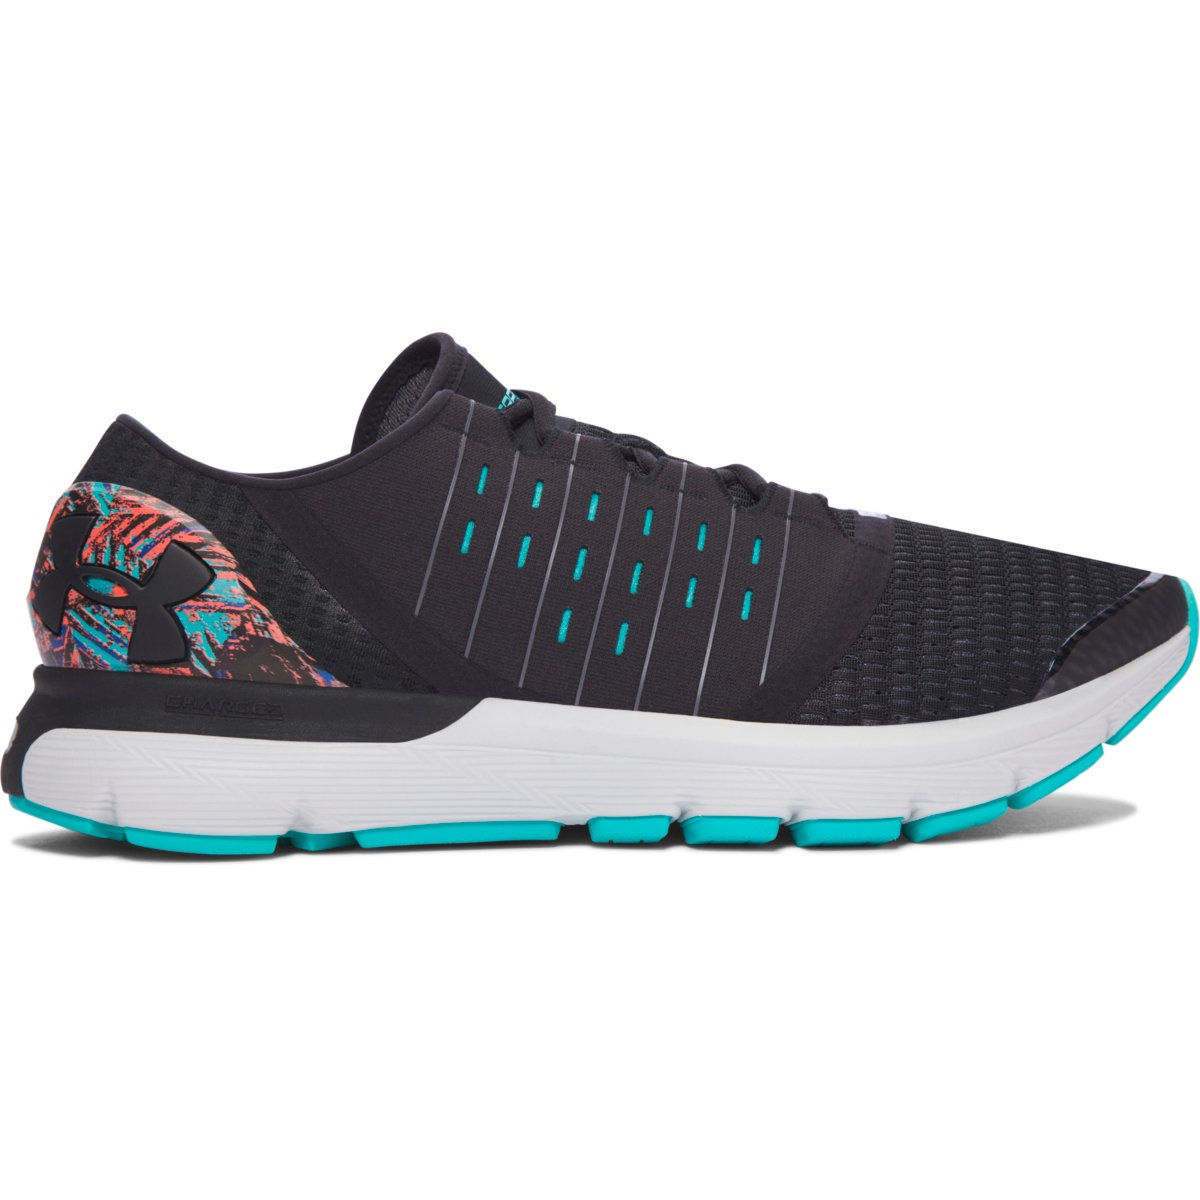 Chaussures Under Armour Speedform Europa City Record - 13 UK